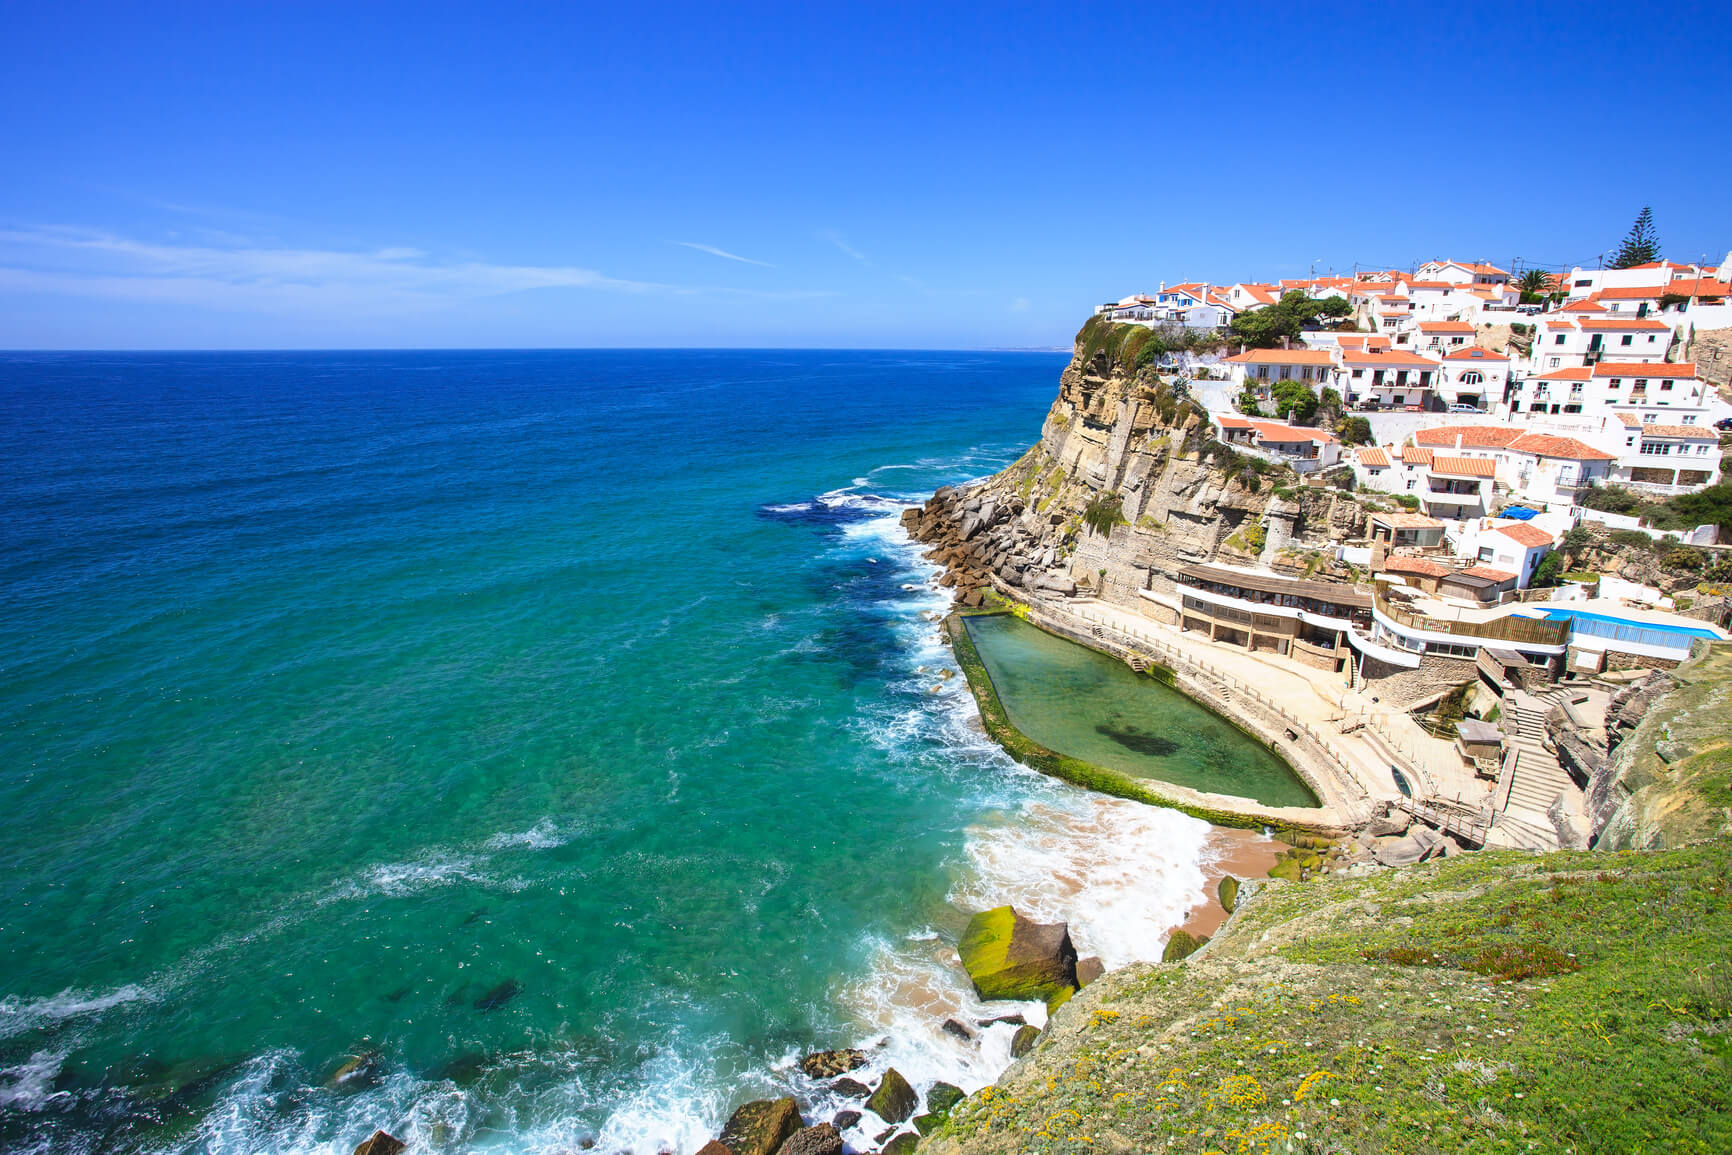 Bordeaux, France to Lisbon, Portugal for only €19 roundtrip (Sep-Oct dates)